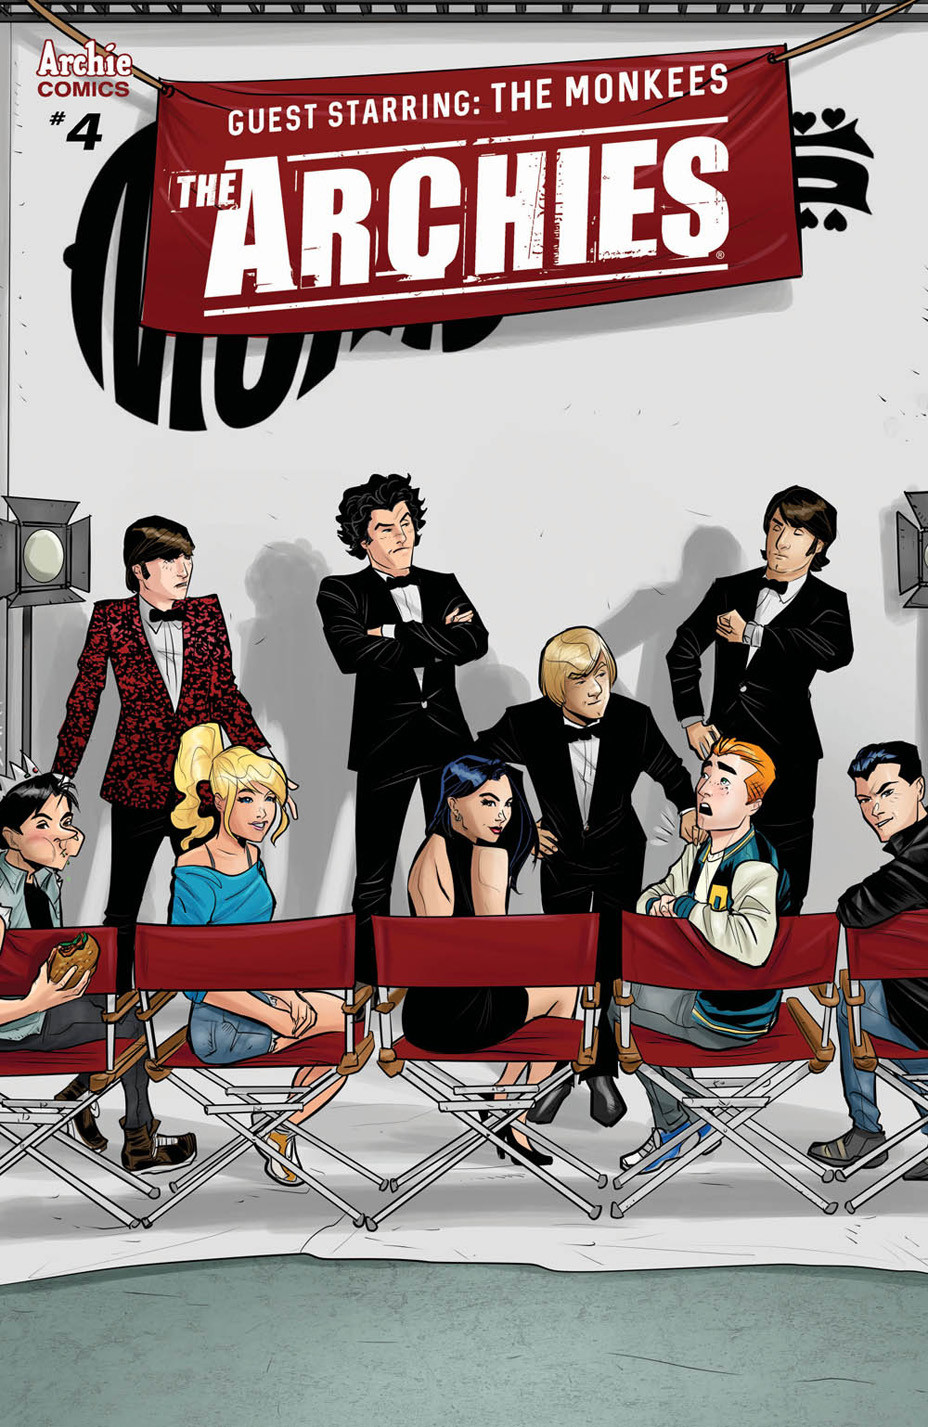 The Archies #4 cover